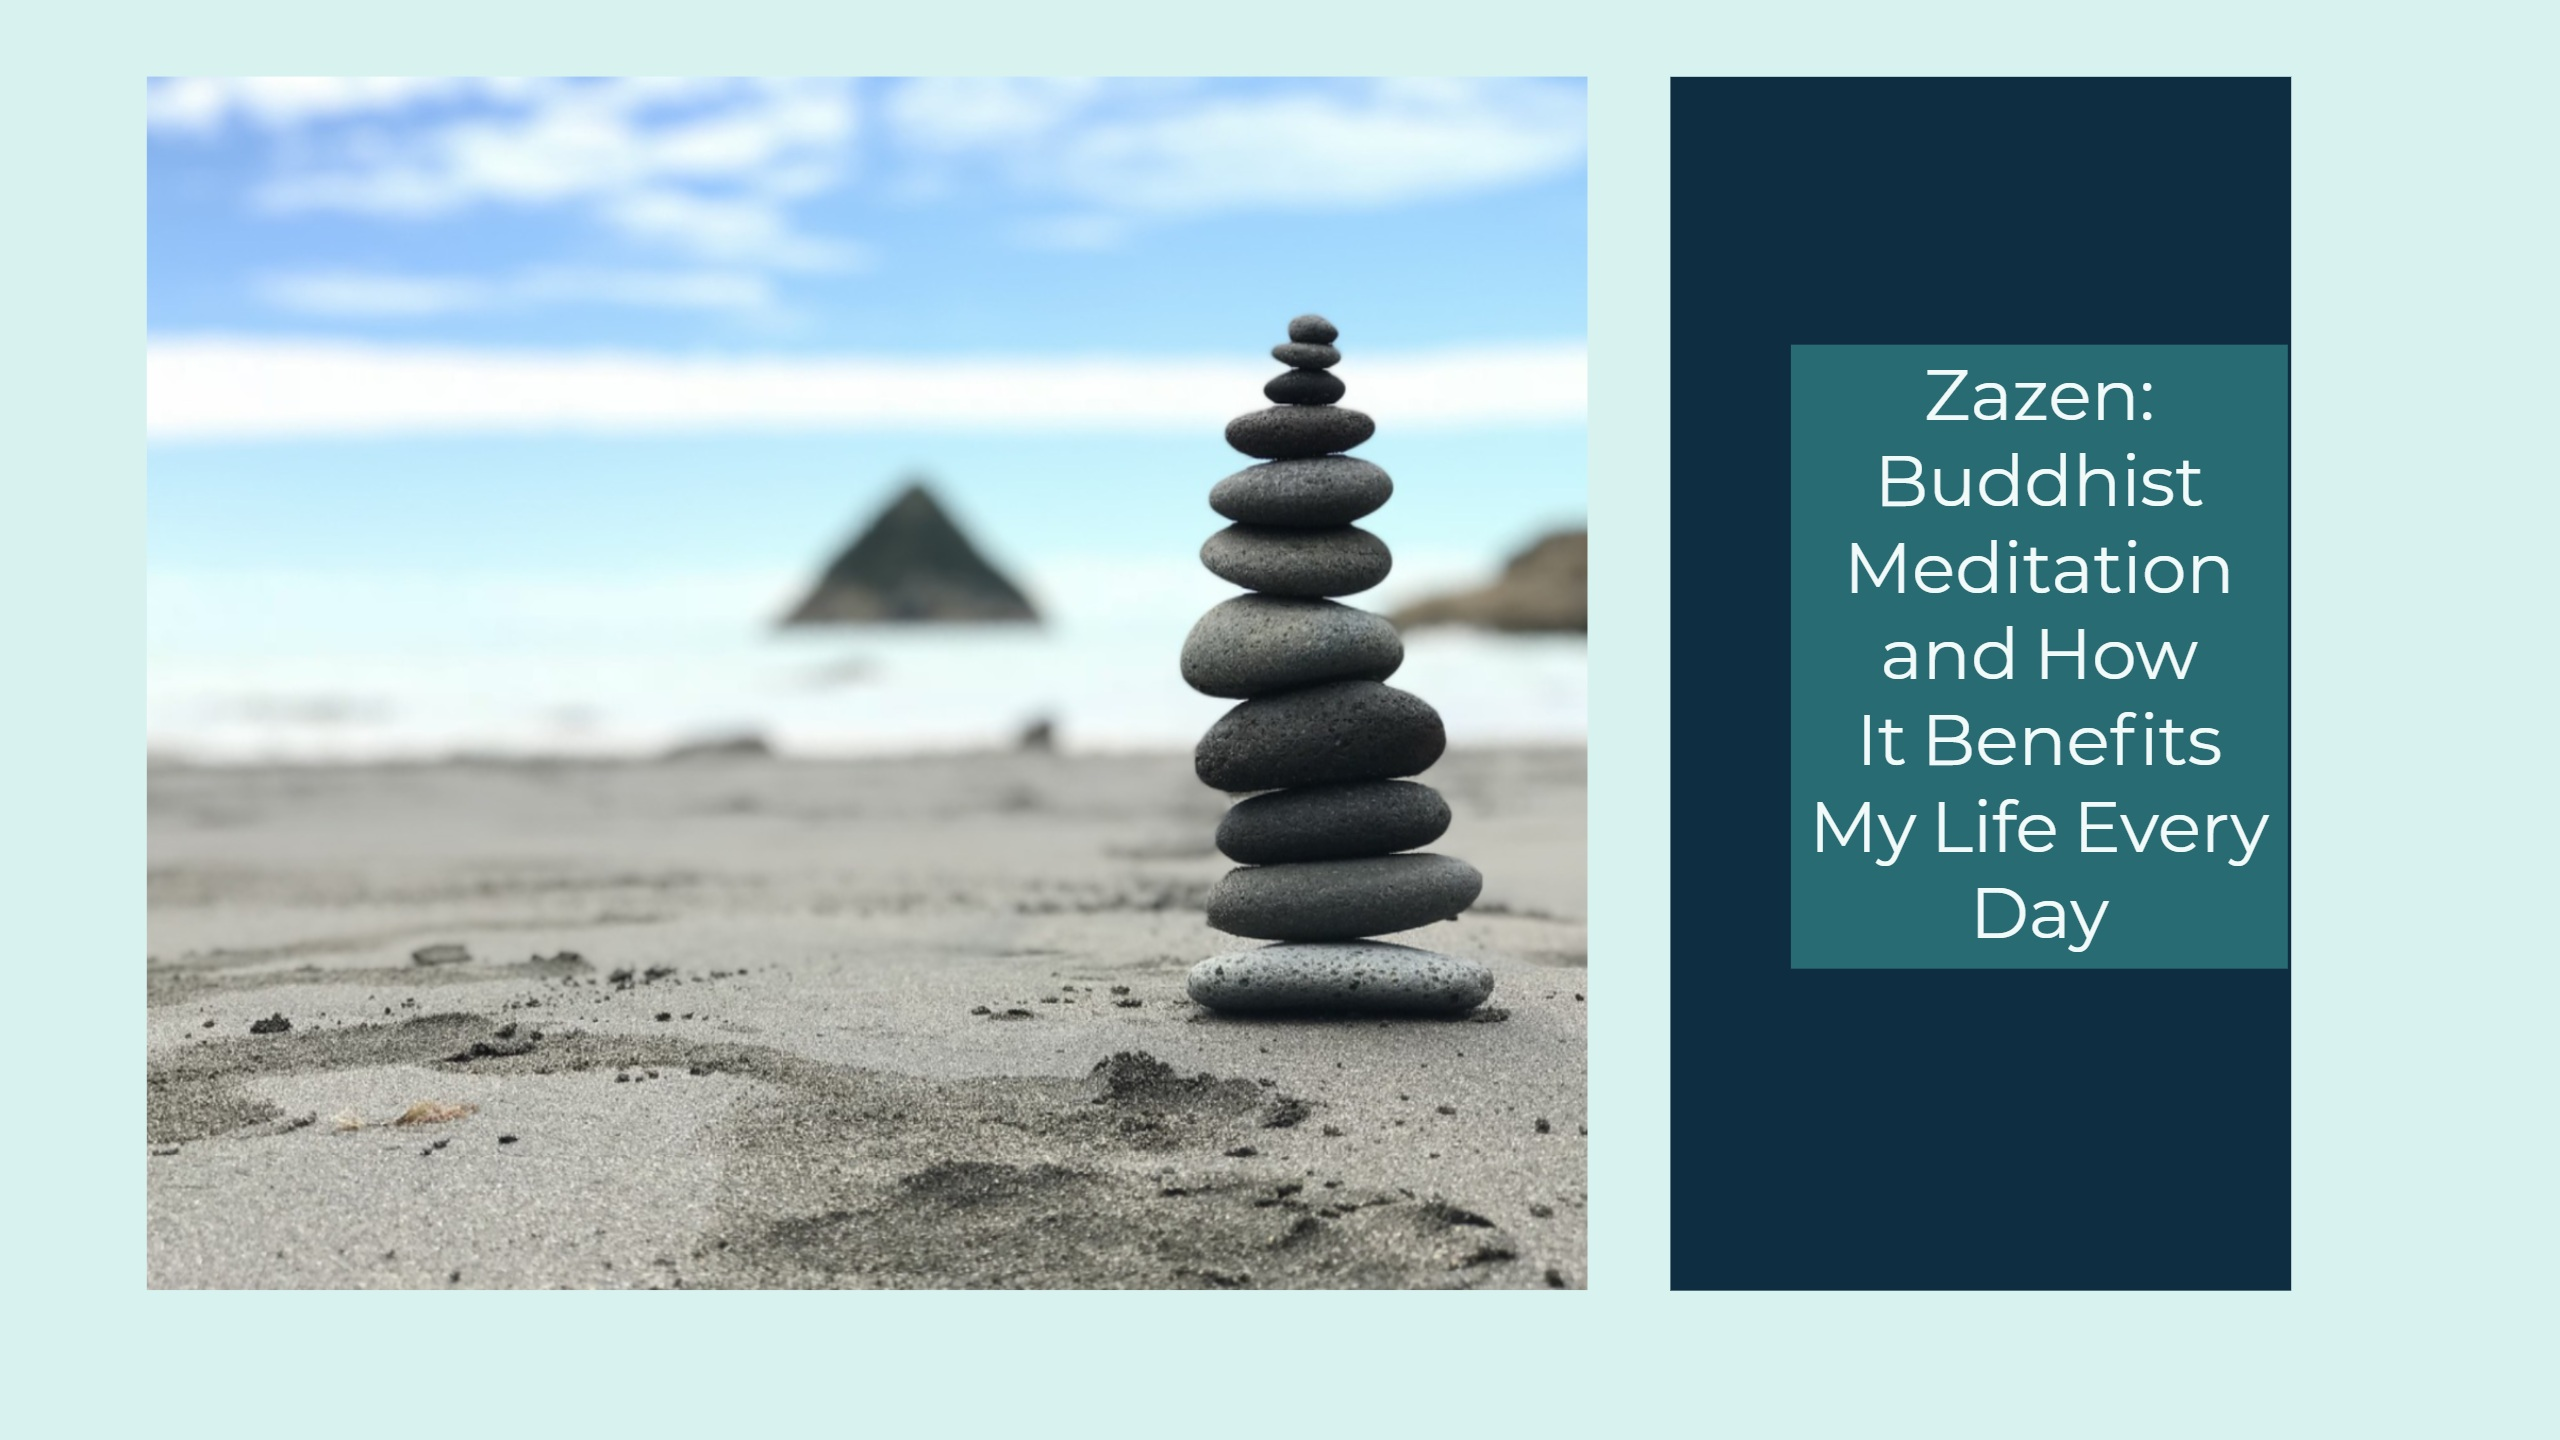 Zazen Buddhist Meditation and How It Benefits My Life Every Day